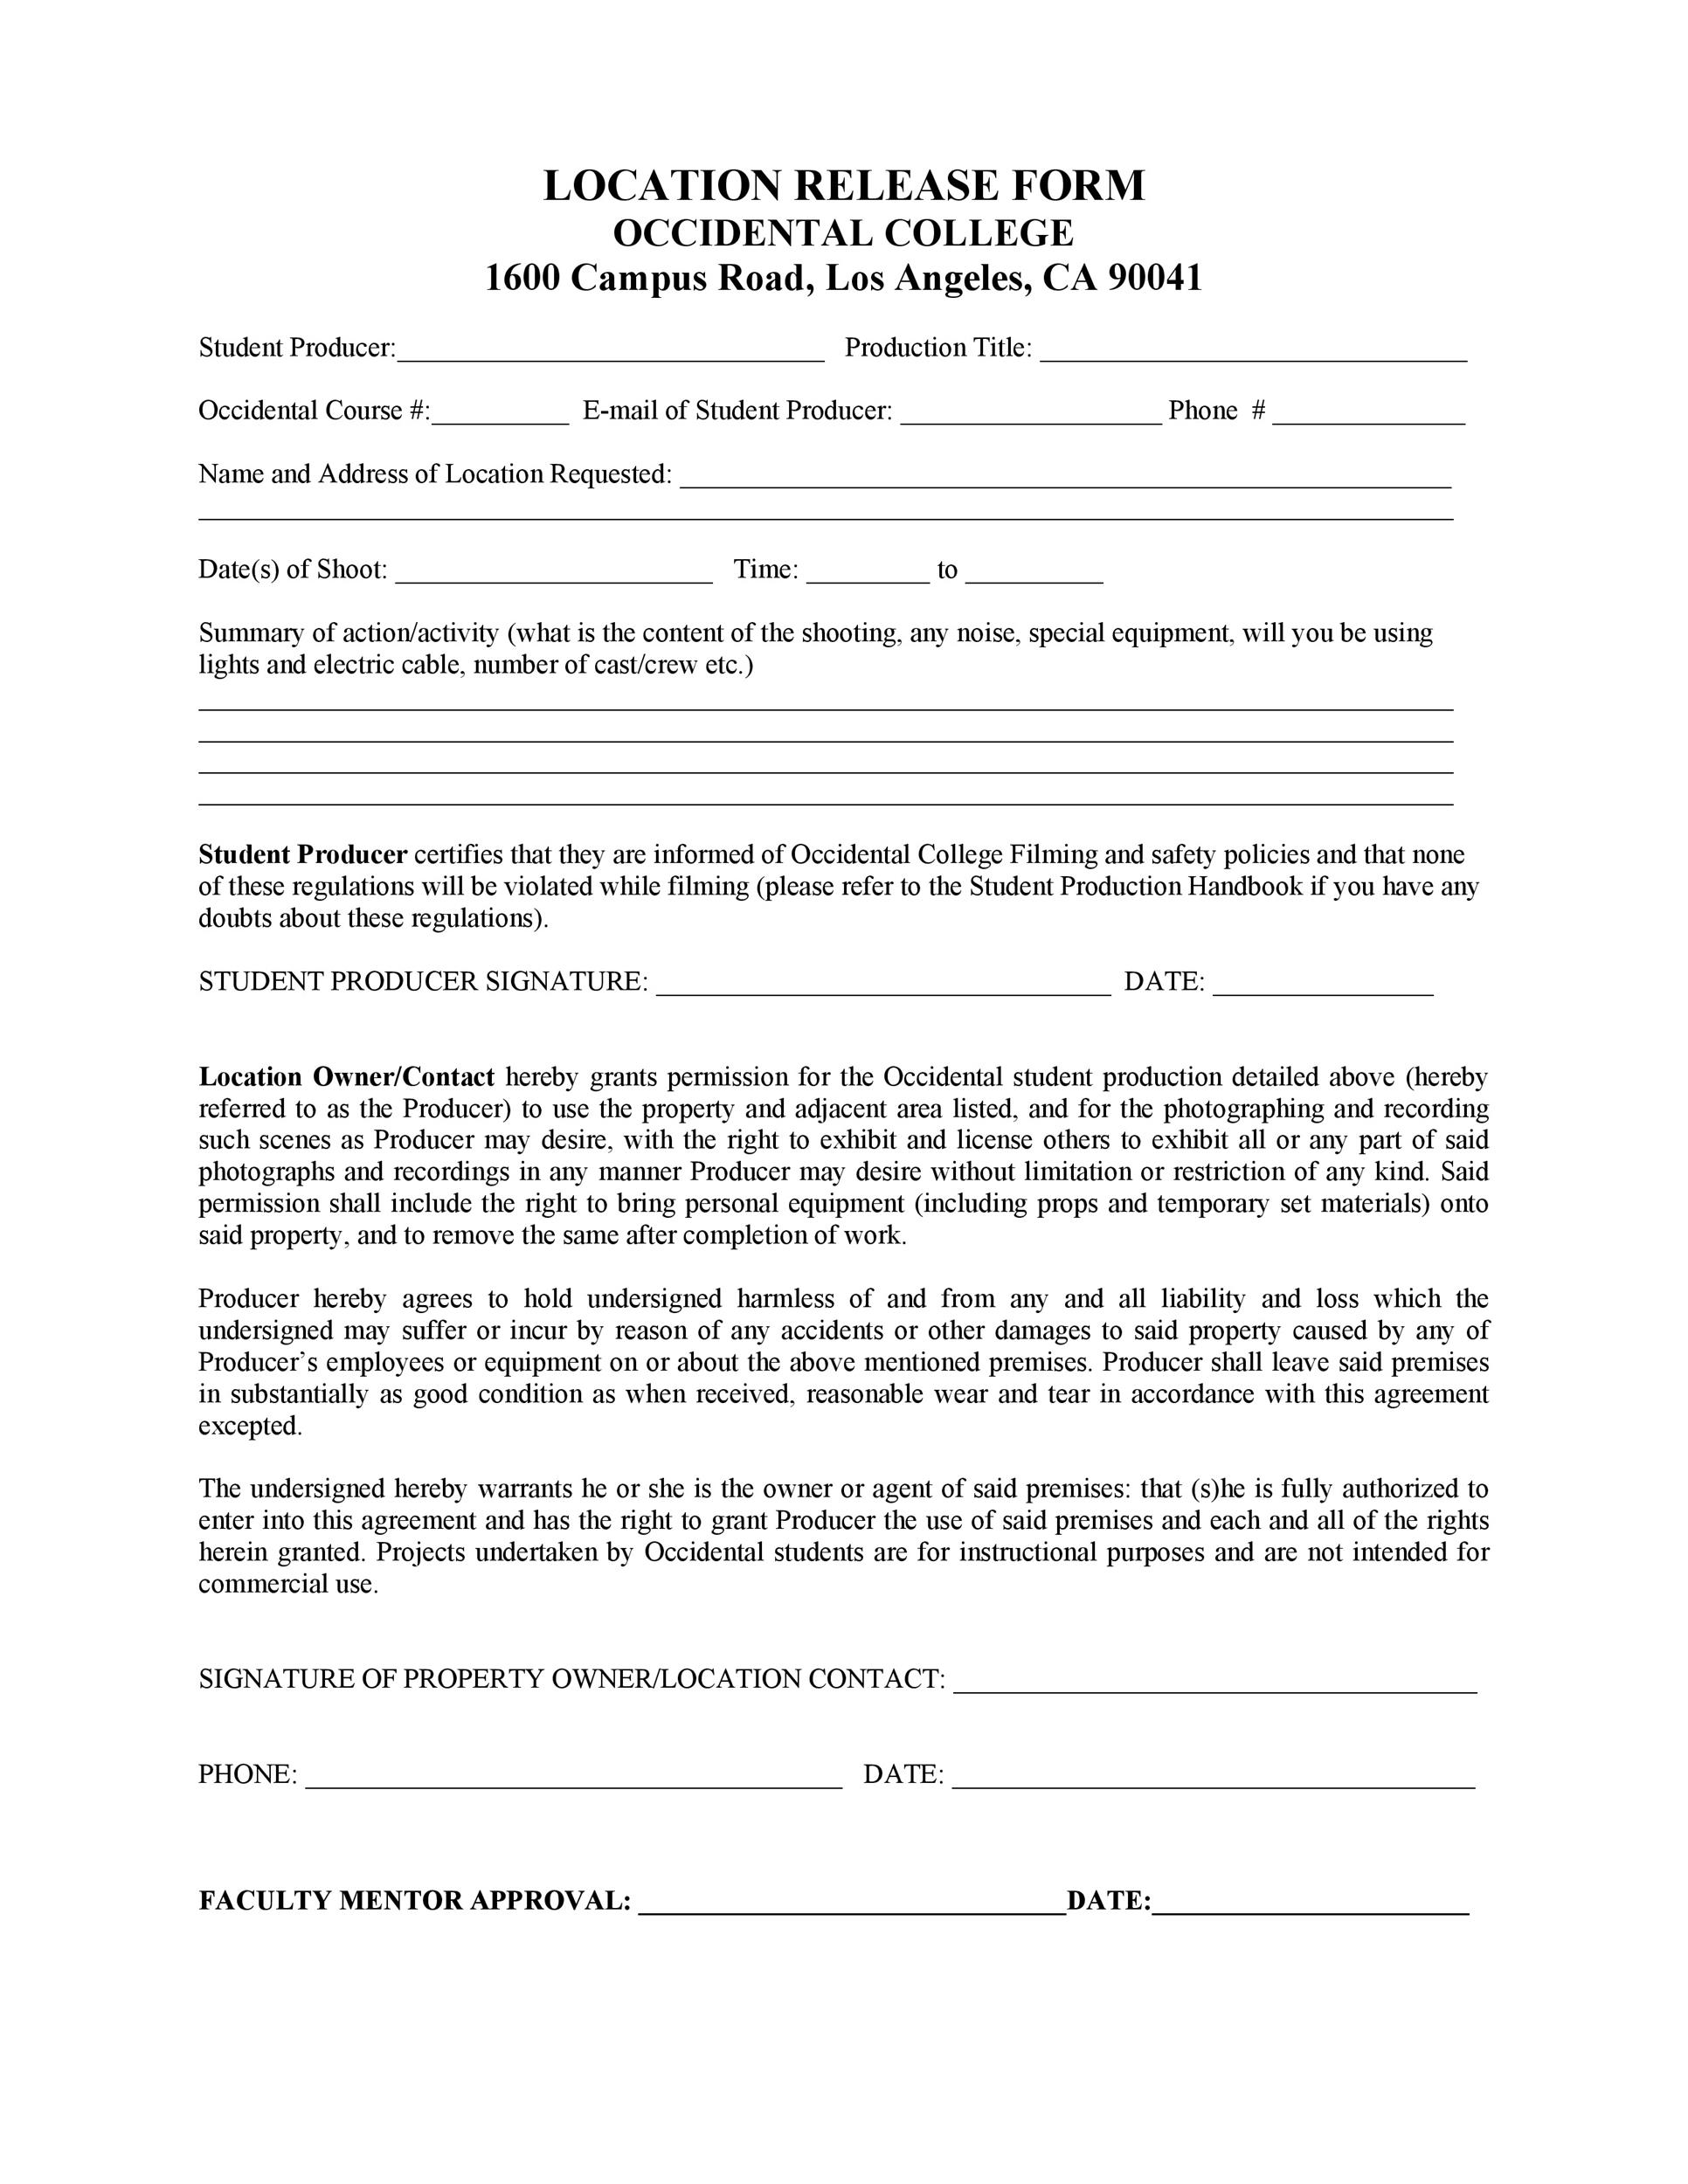 Free location release form 50